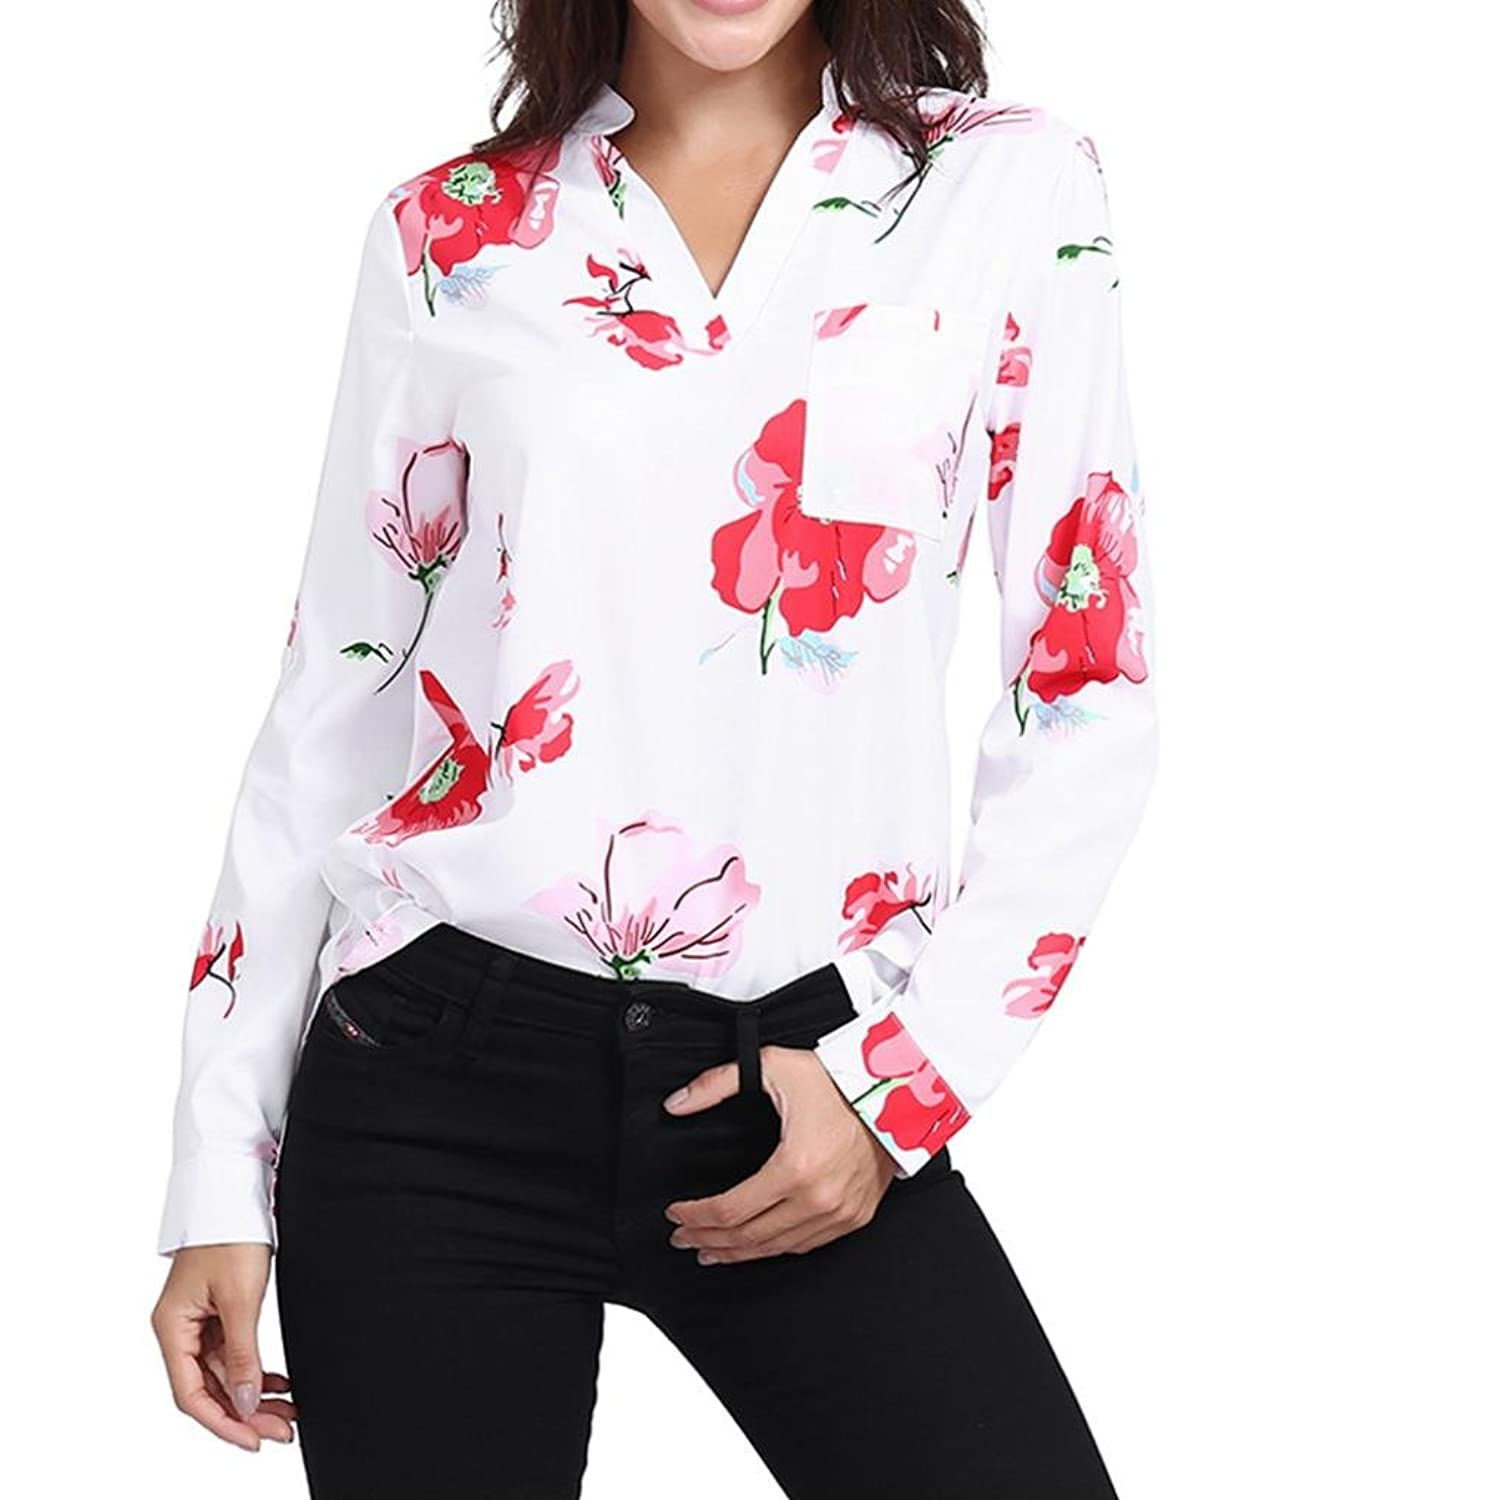 2019 Summer Short Sleeve Hollow Out Lace Deco Women Cotton Shirts Fashion Women Short Sleeve Cotton Blouses Office Tops Complete In Specifications Women's Clothing